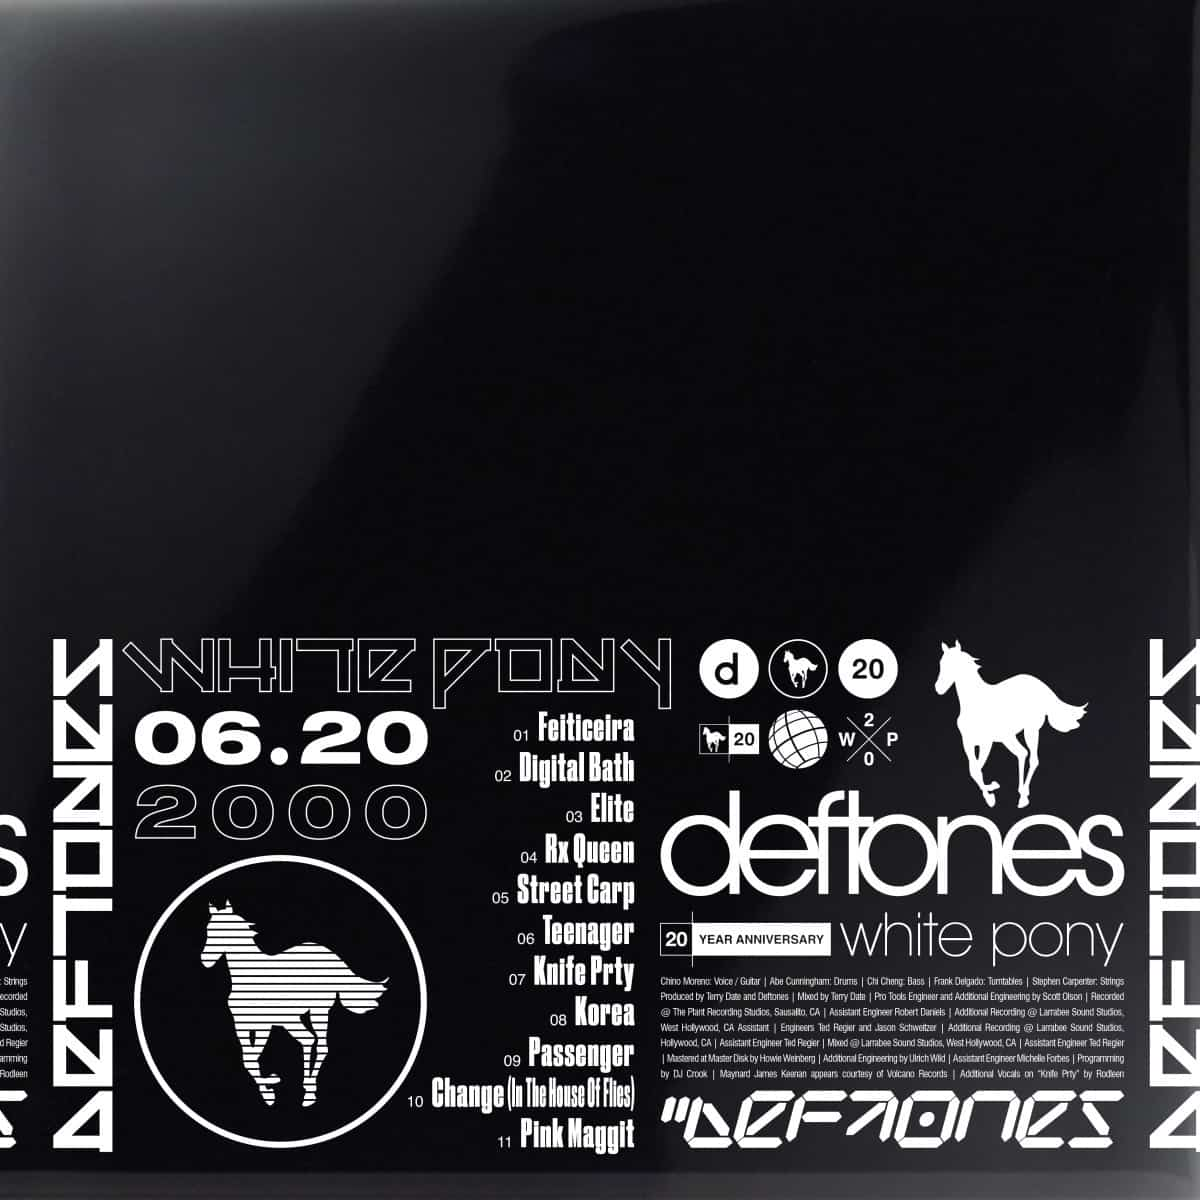 Deftones - White Pony (20th Anniversary Deluxe Edition) 4LP Vinyl Record Box Set